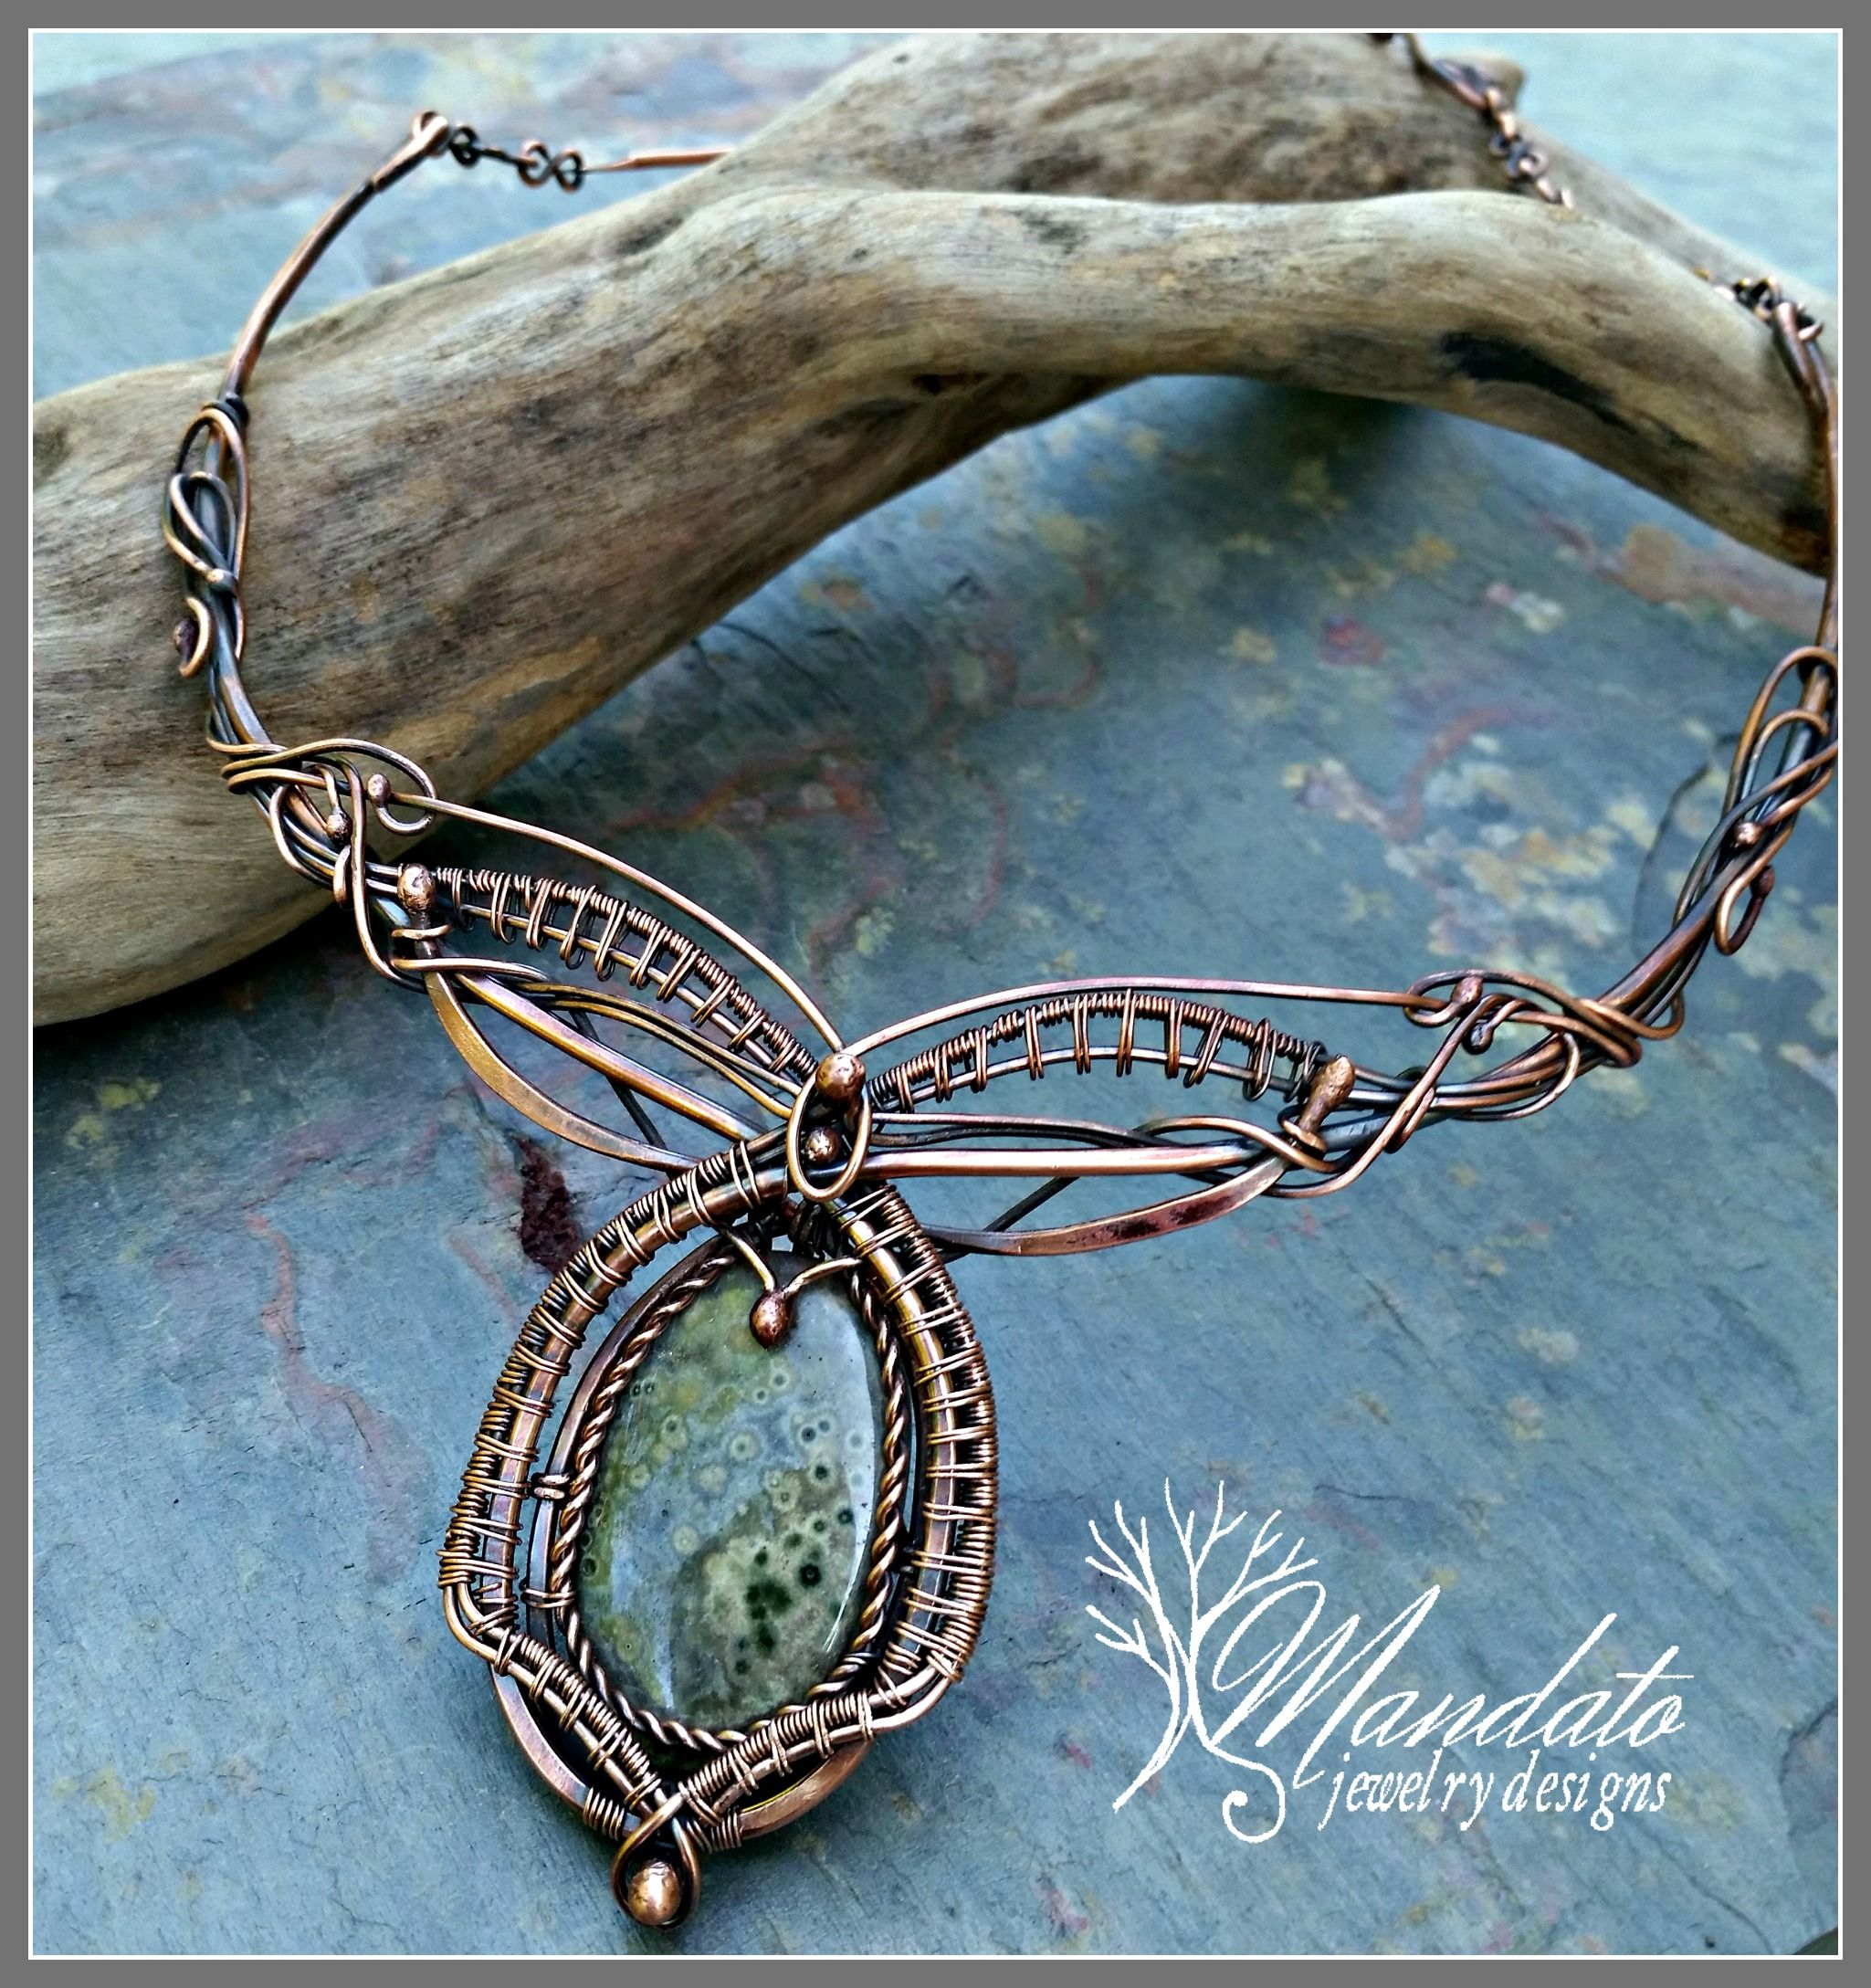 https://www.facebook.com/MandatoJewelryDesigns